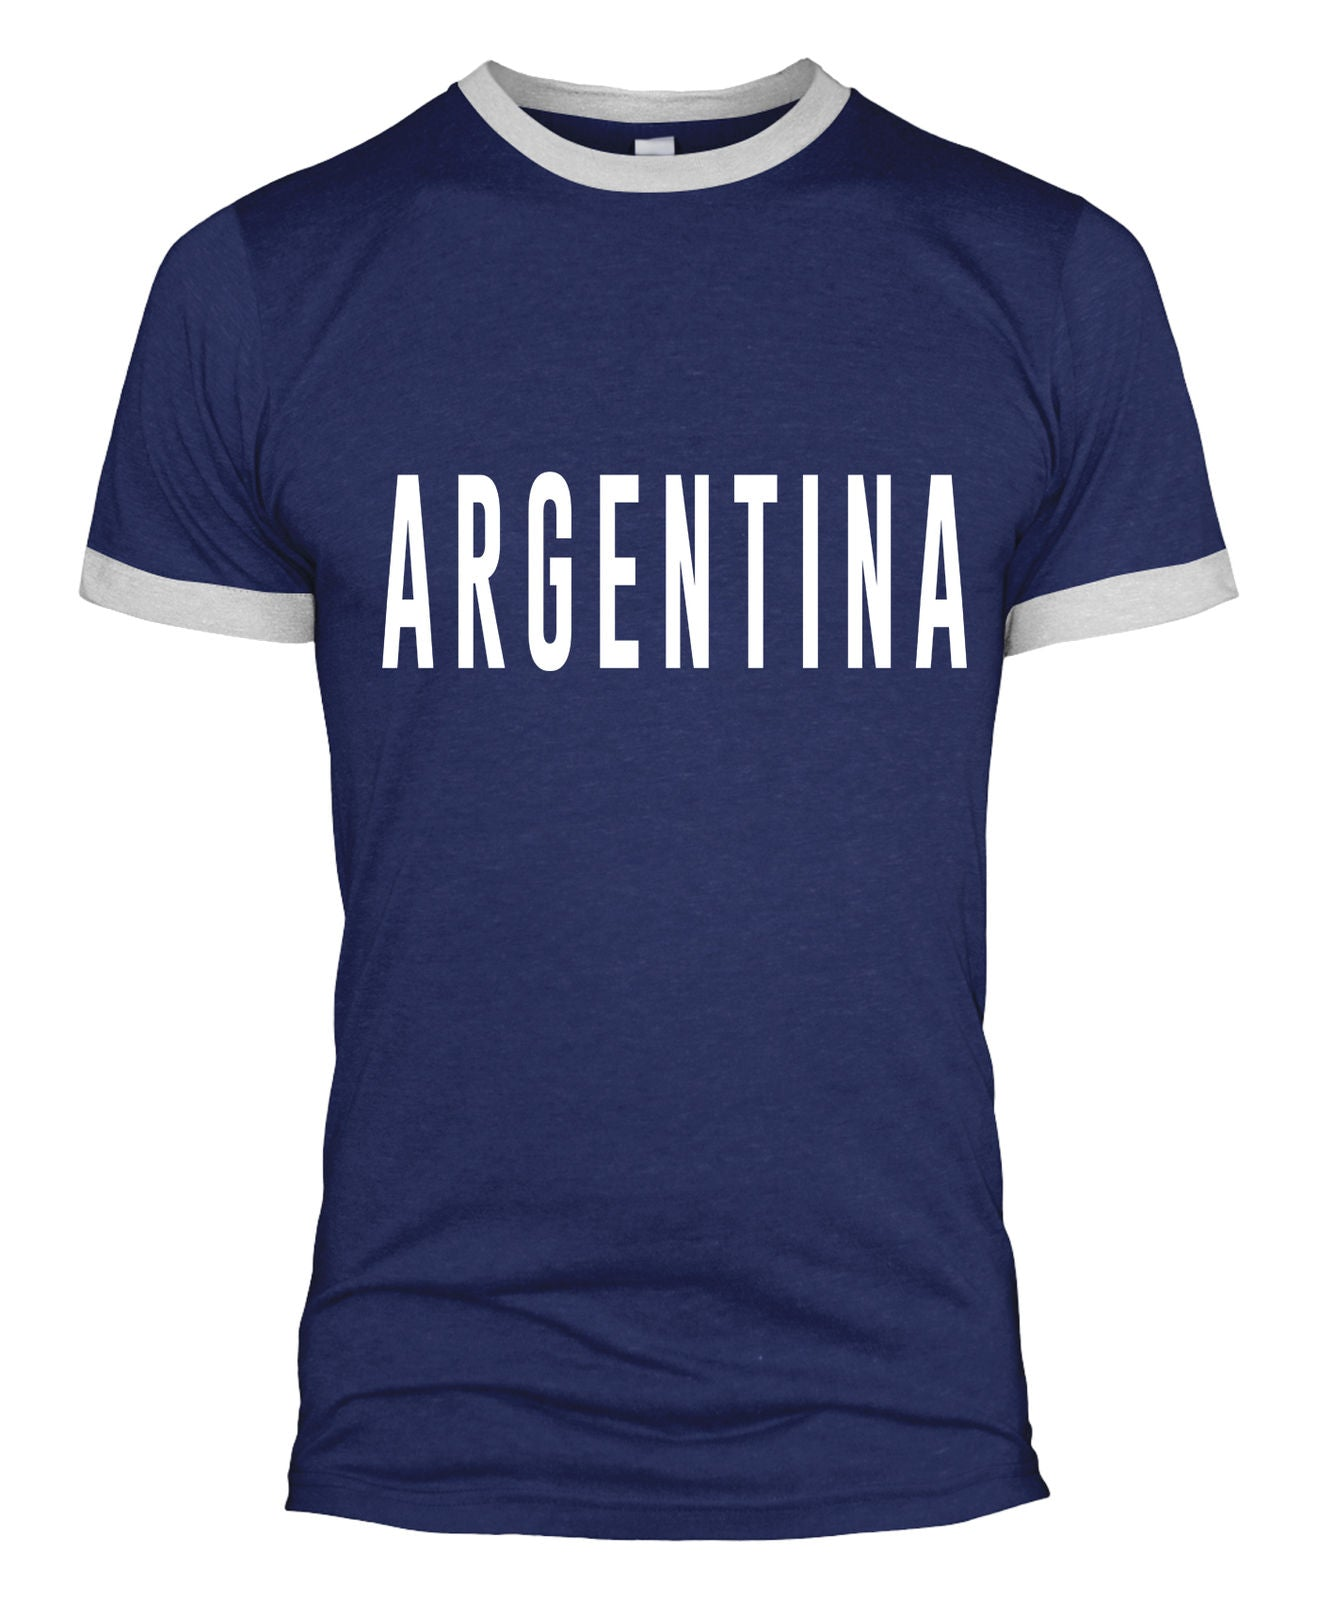 buy online 60749 359ed Argentina Text Retro Football T Shirt Kit Fan World Cup 2018 ...